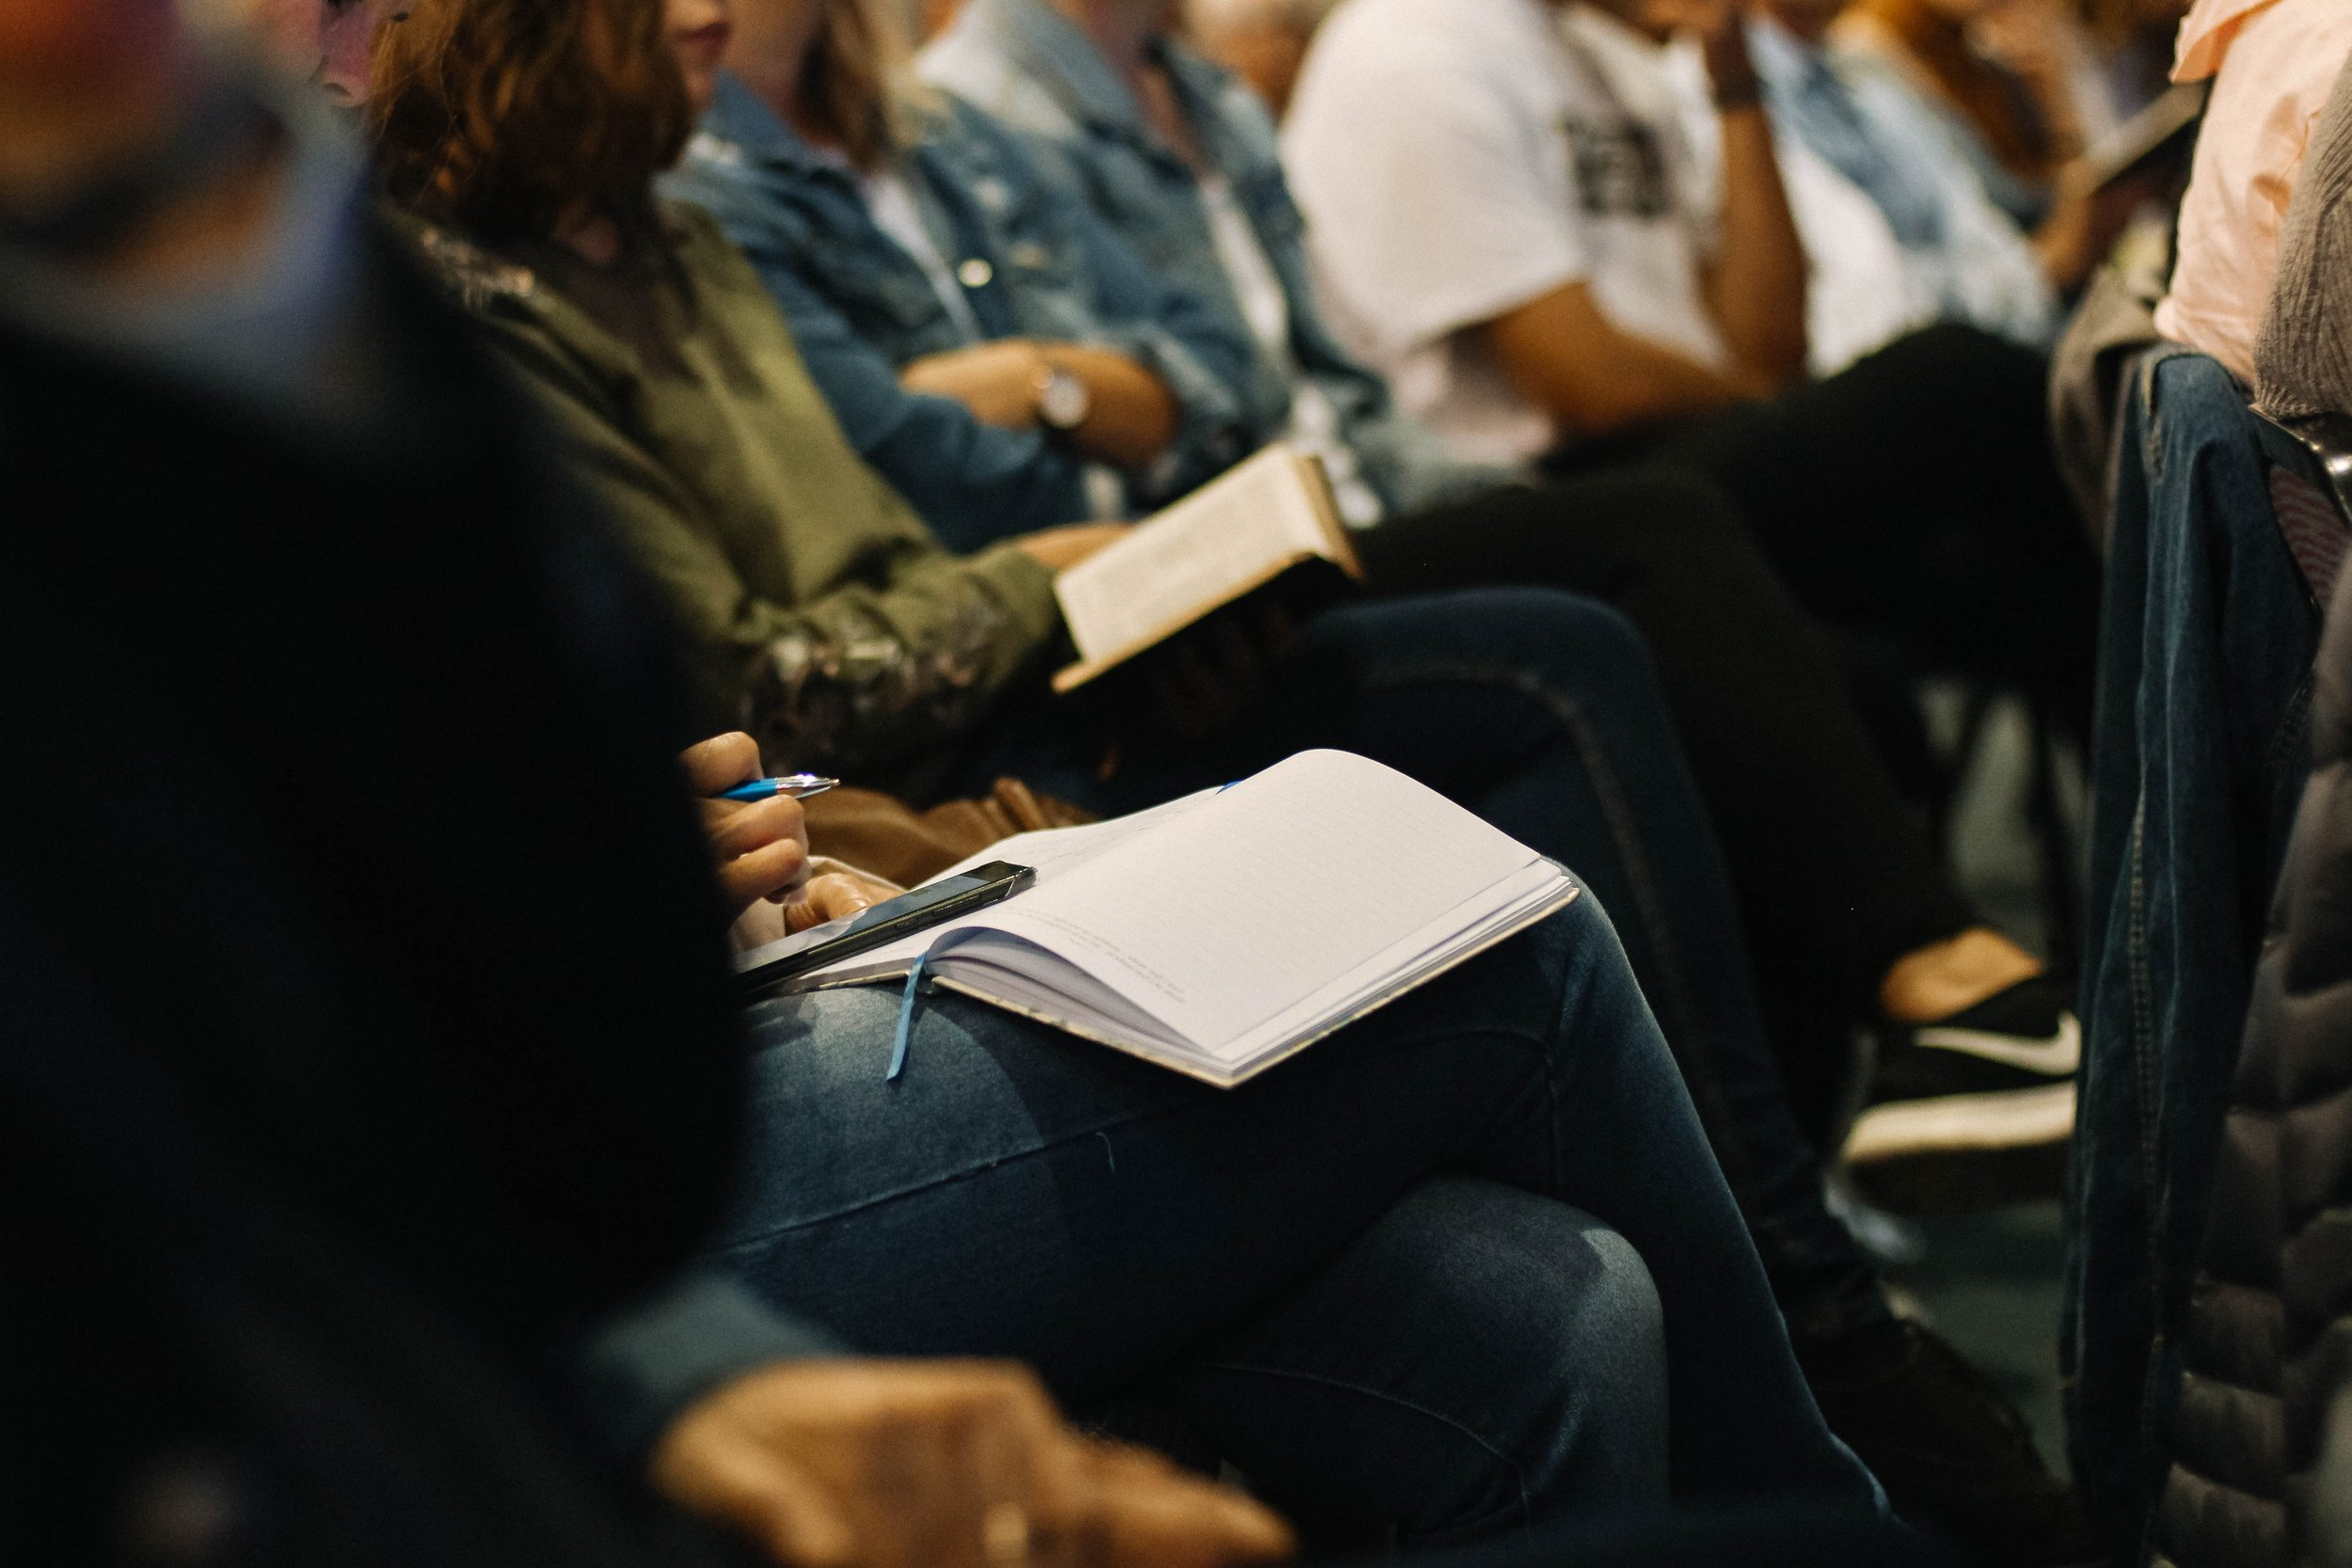 We Gather. - We desire to stay connected to God's people through fellowship and community. We do this on Sunday Mornings and throughout the week.